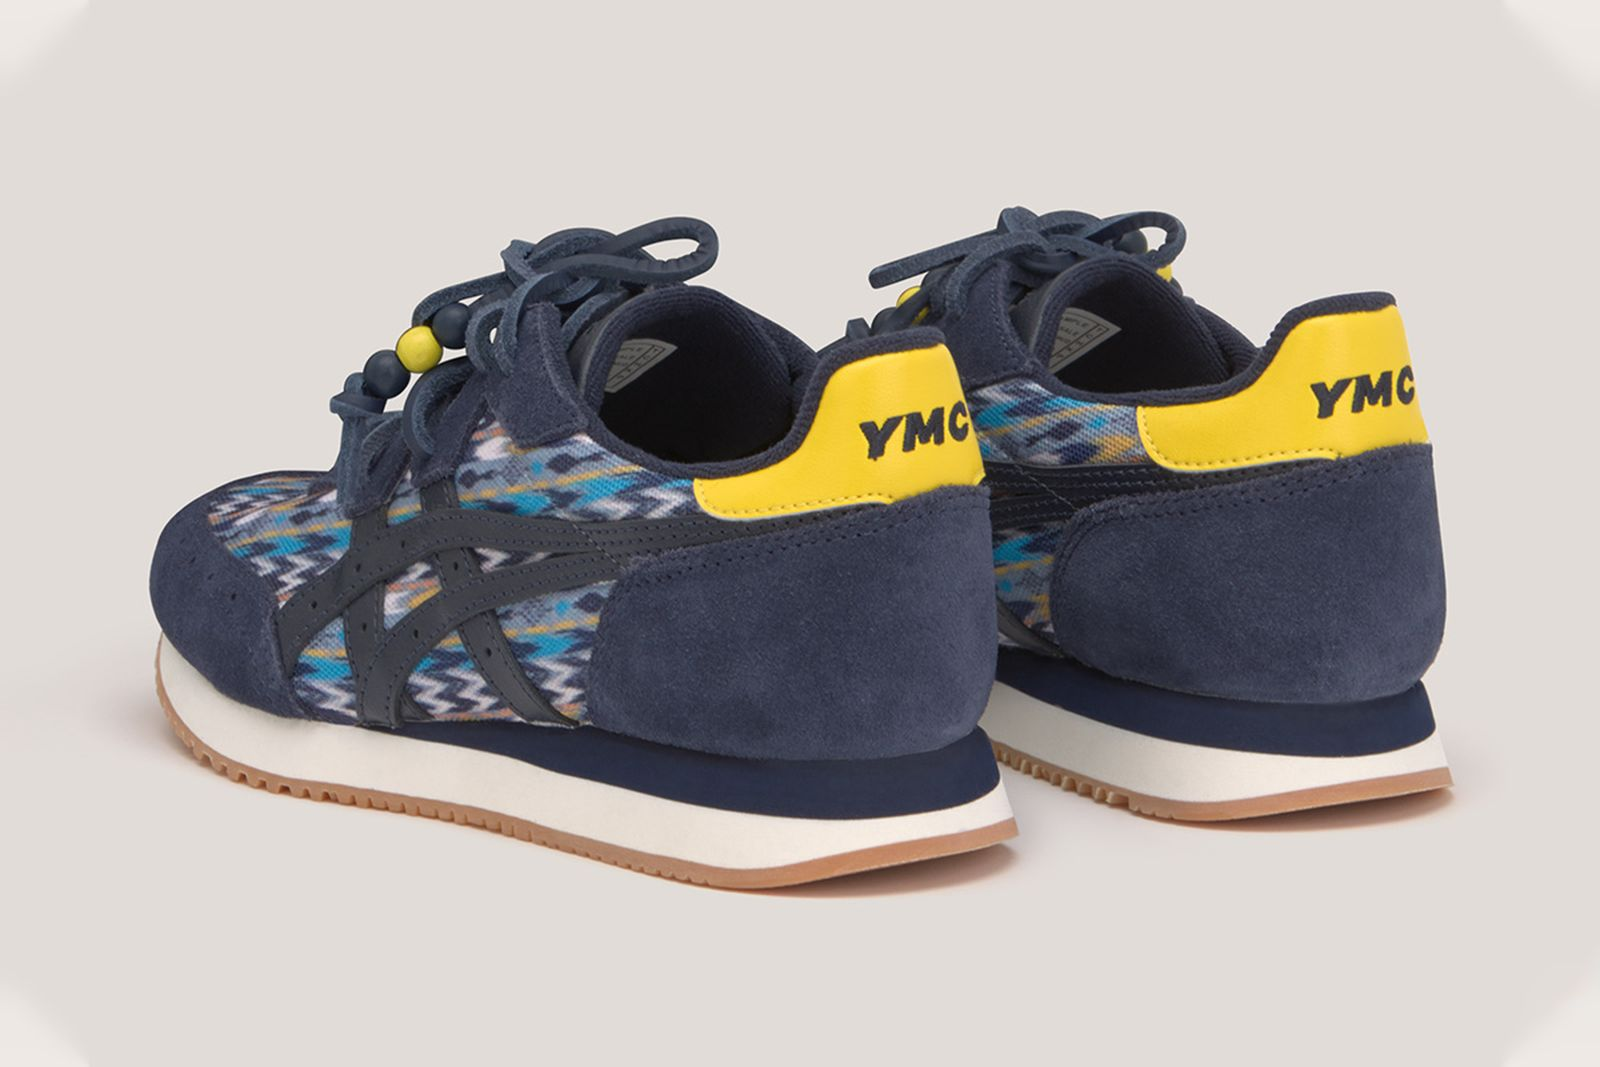 ymc-asics-tarther-og-release-date-price-product-01